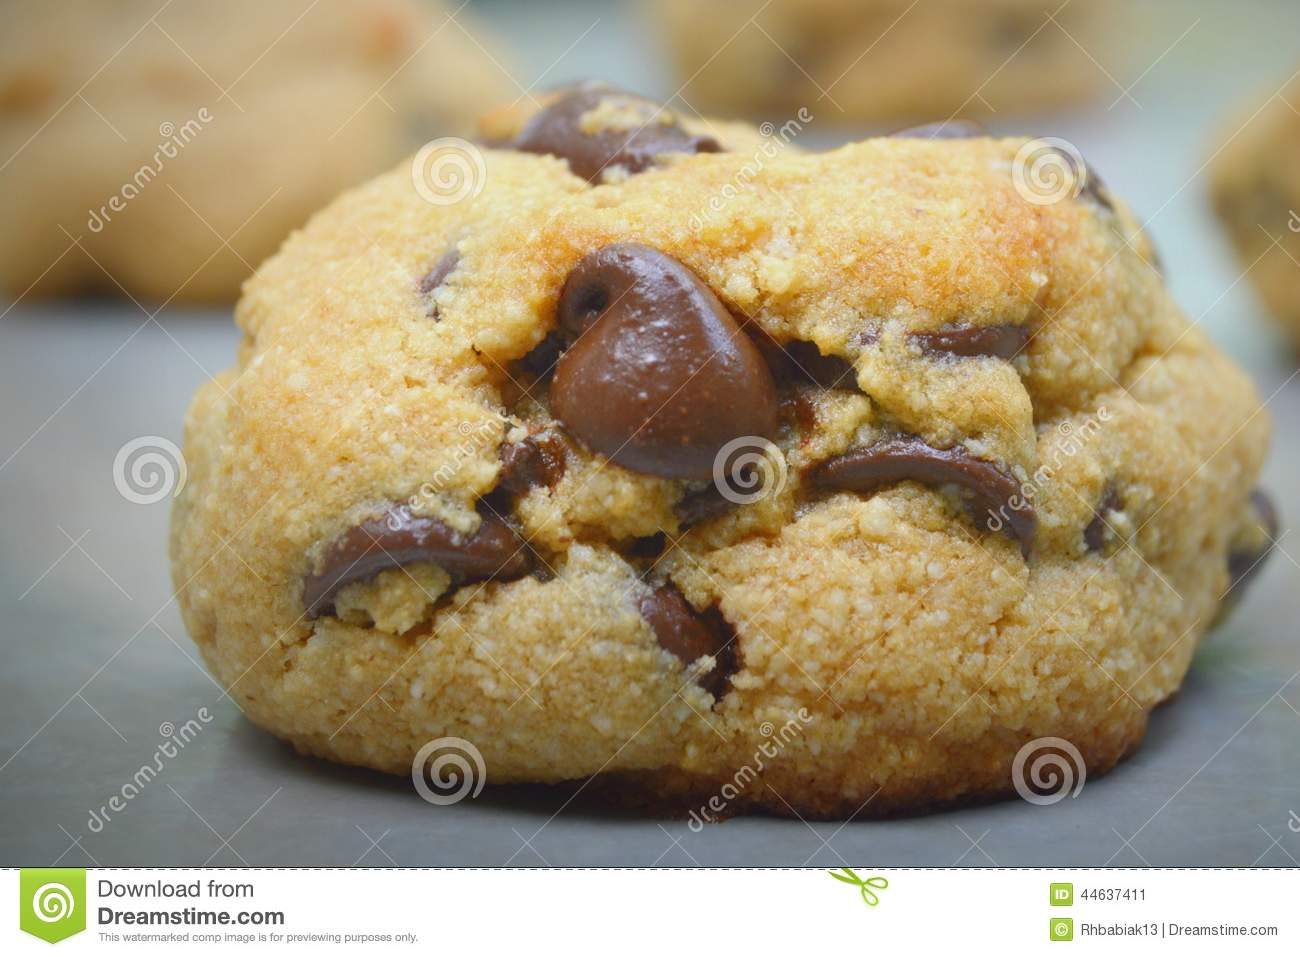 Chocolate Chip Cookie Gluten Free Stock Photo - Image: 44637411